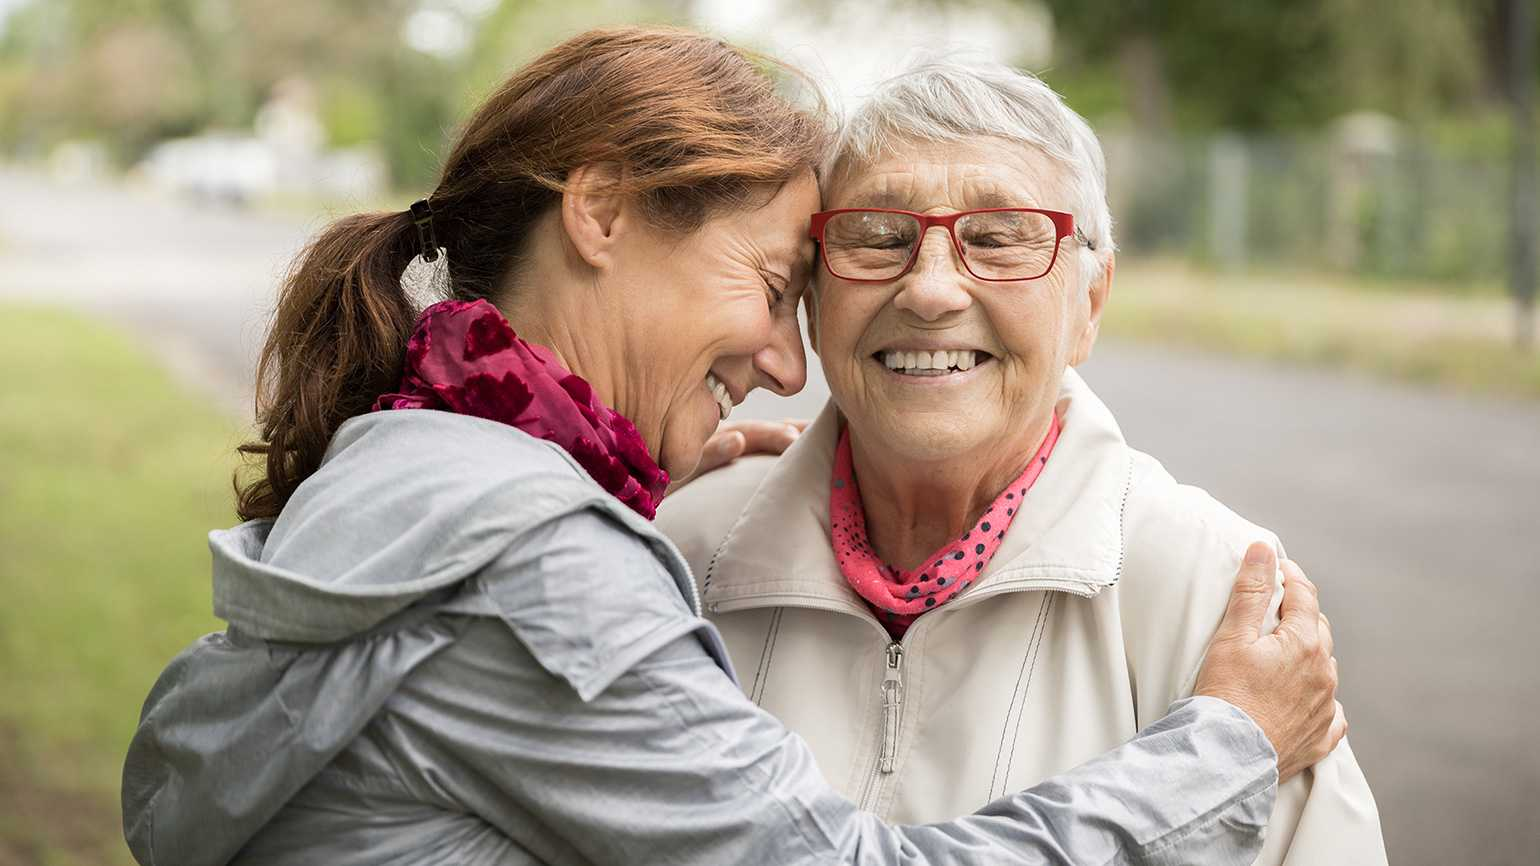 A caregiver embraces her mother